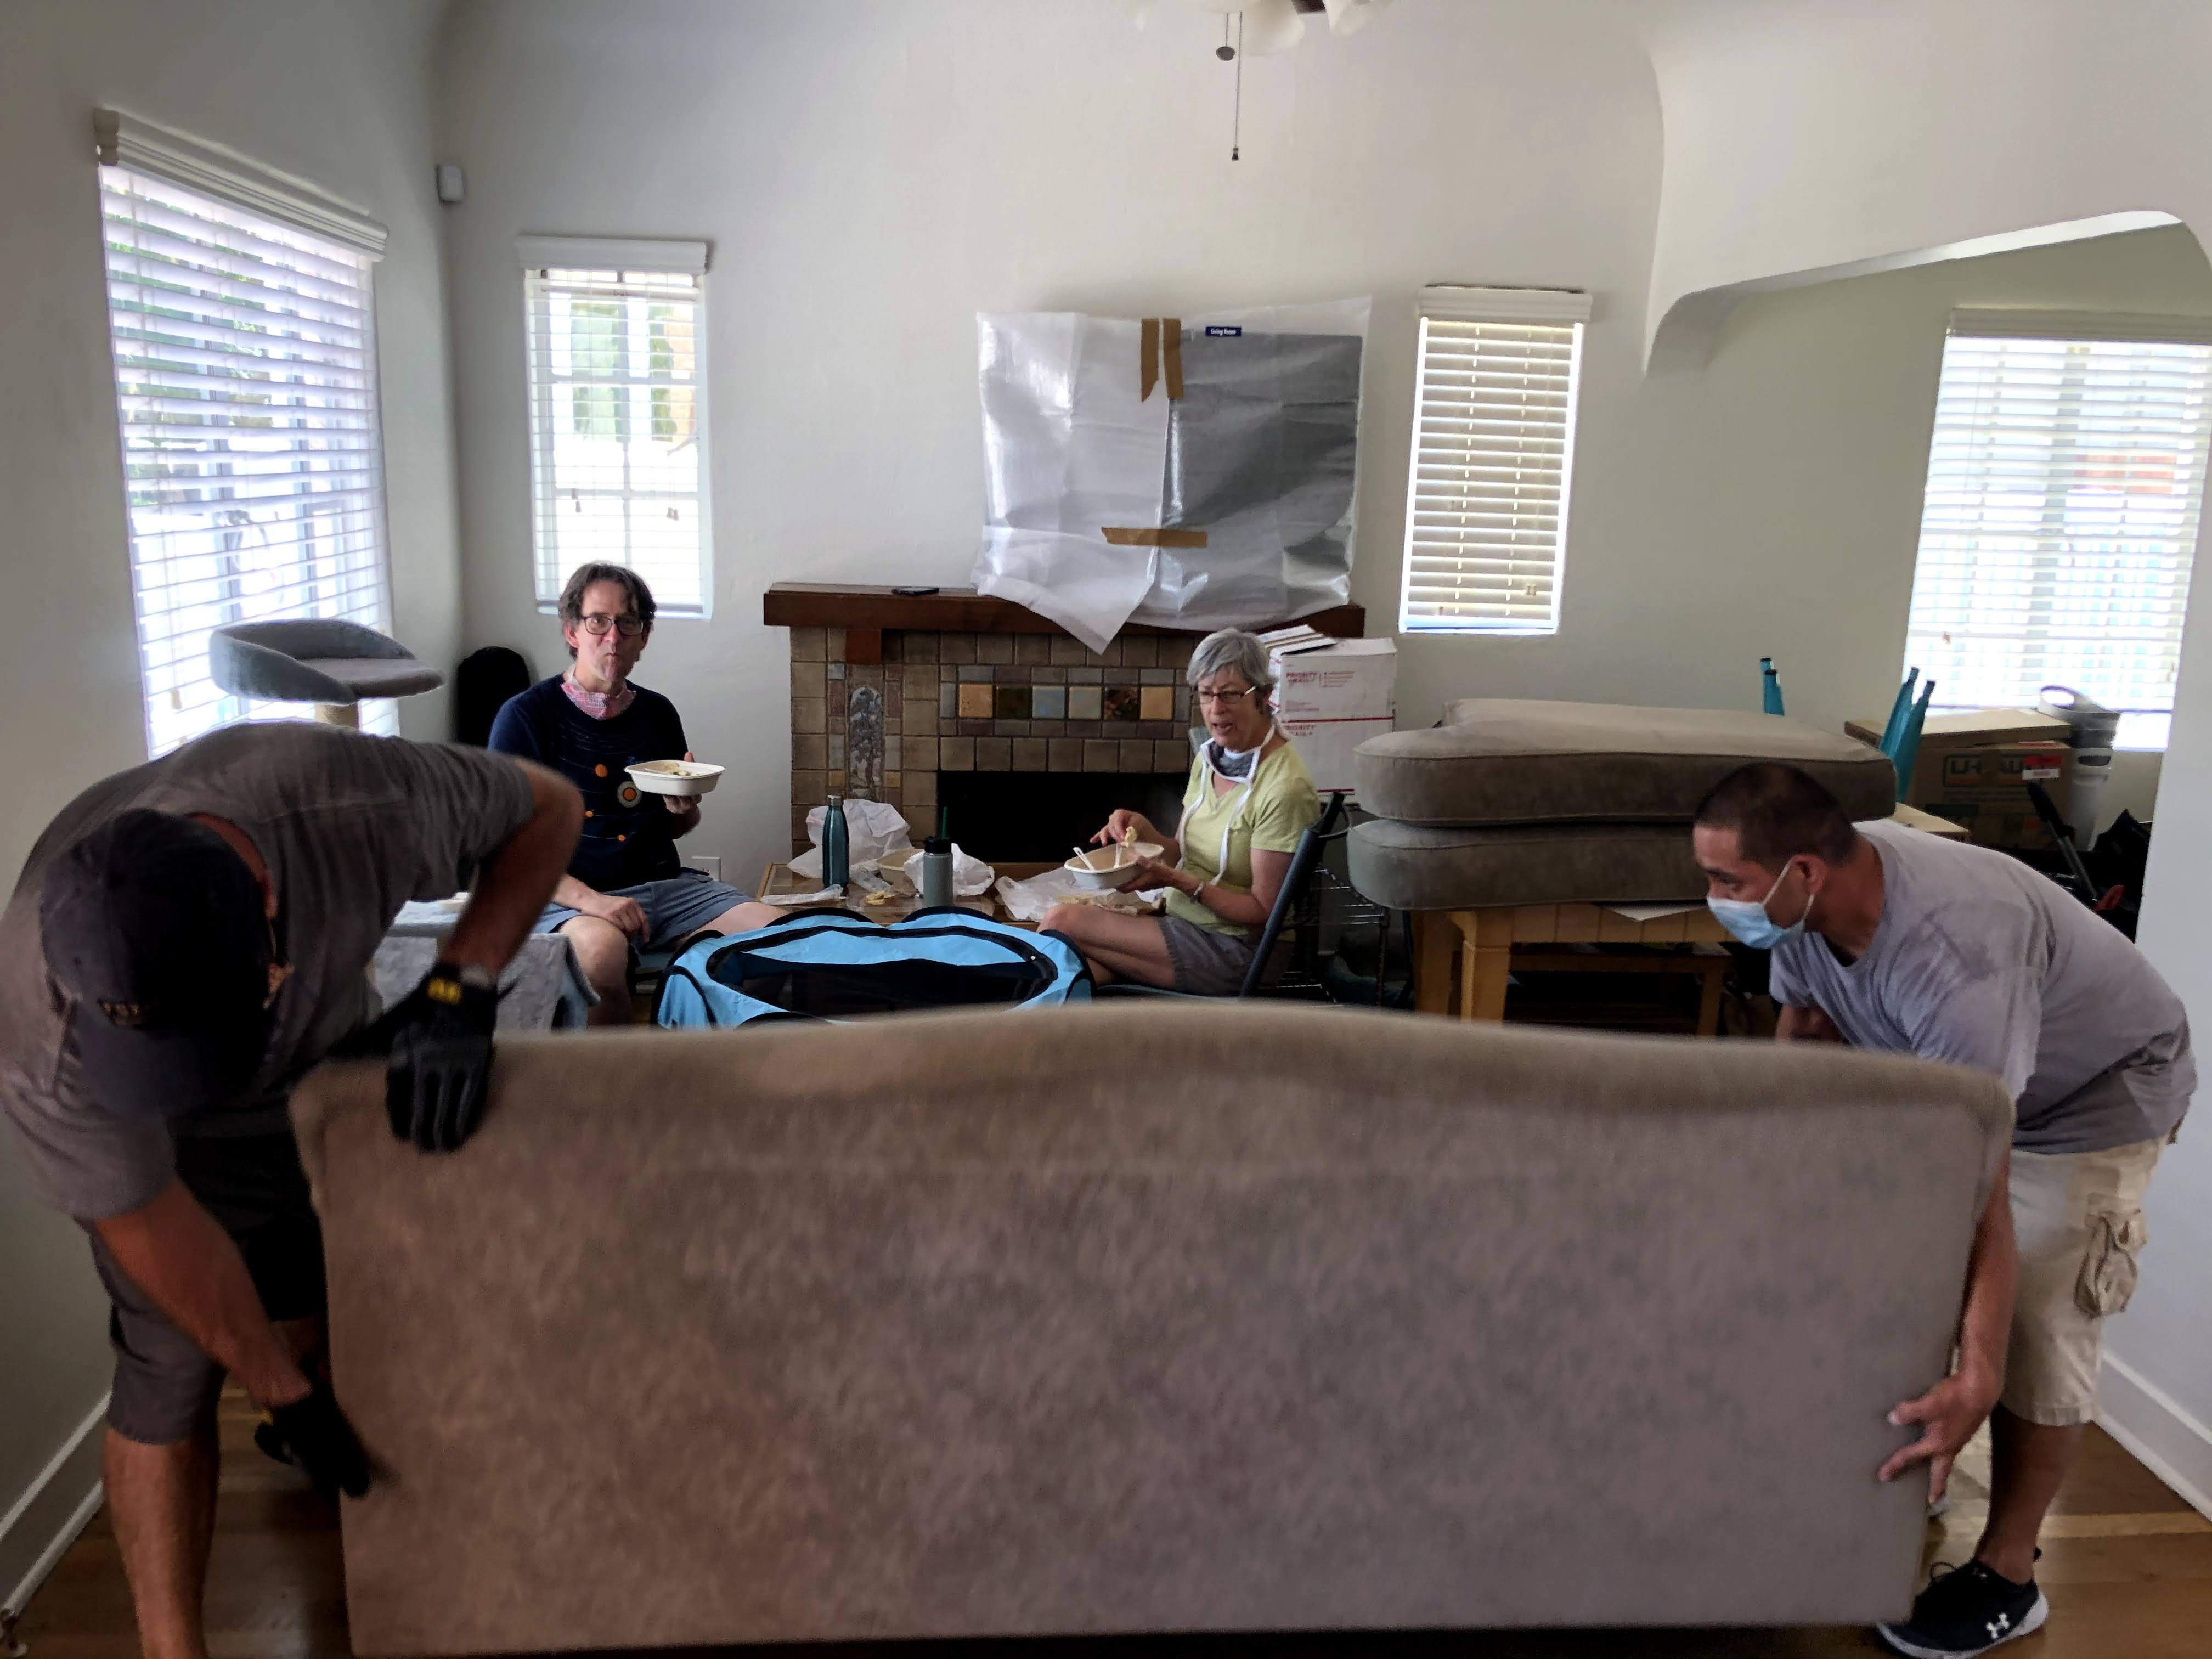 movers with masks putting couch on floor